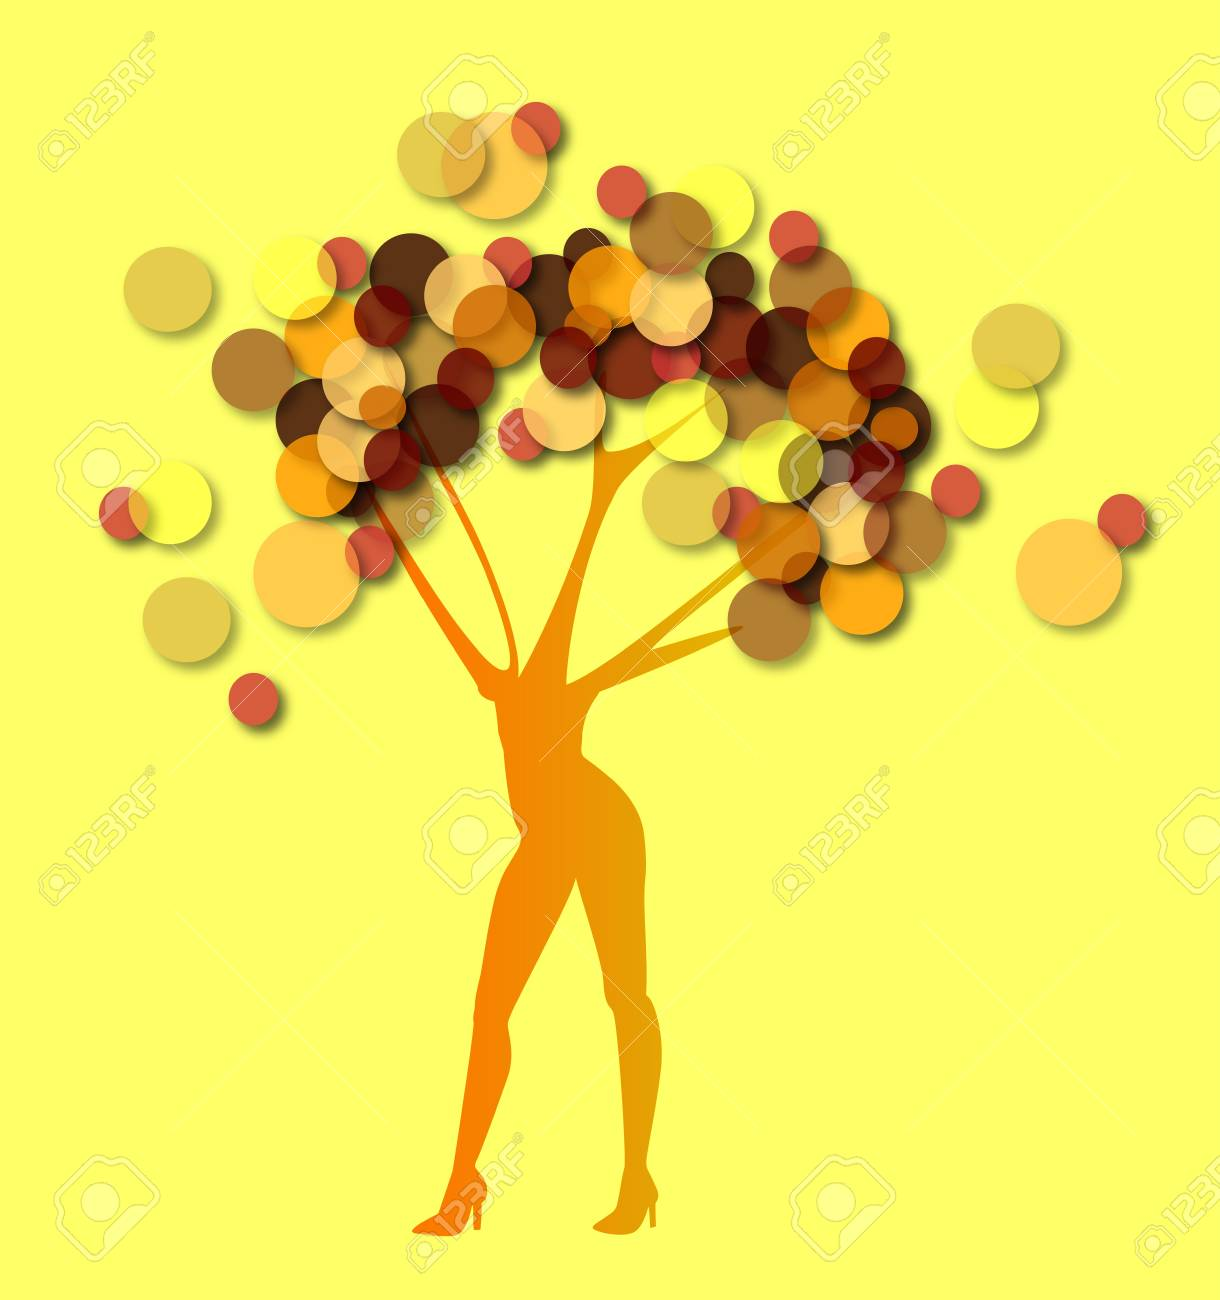 the woman tree on yellow background Stock Vector - 18387039